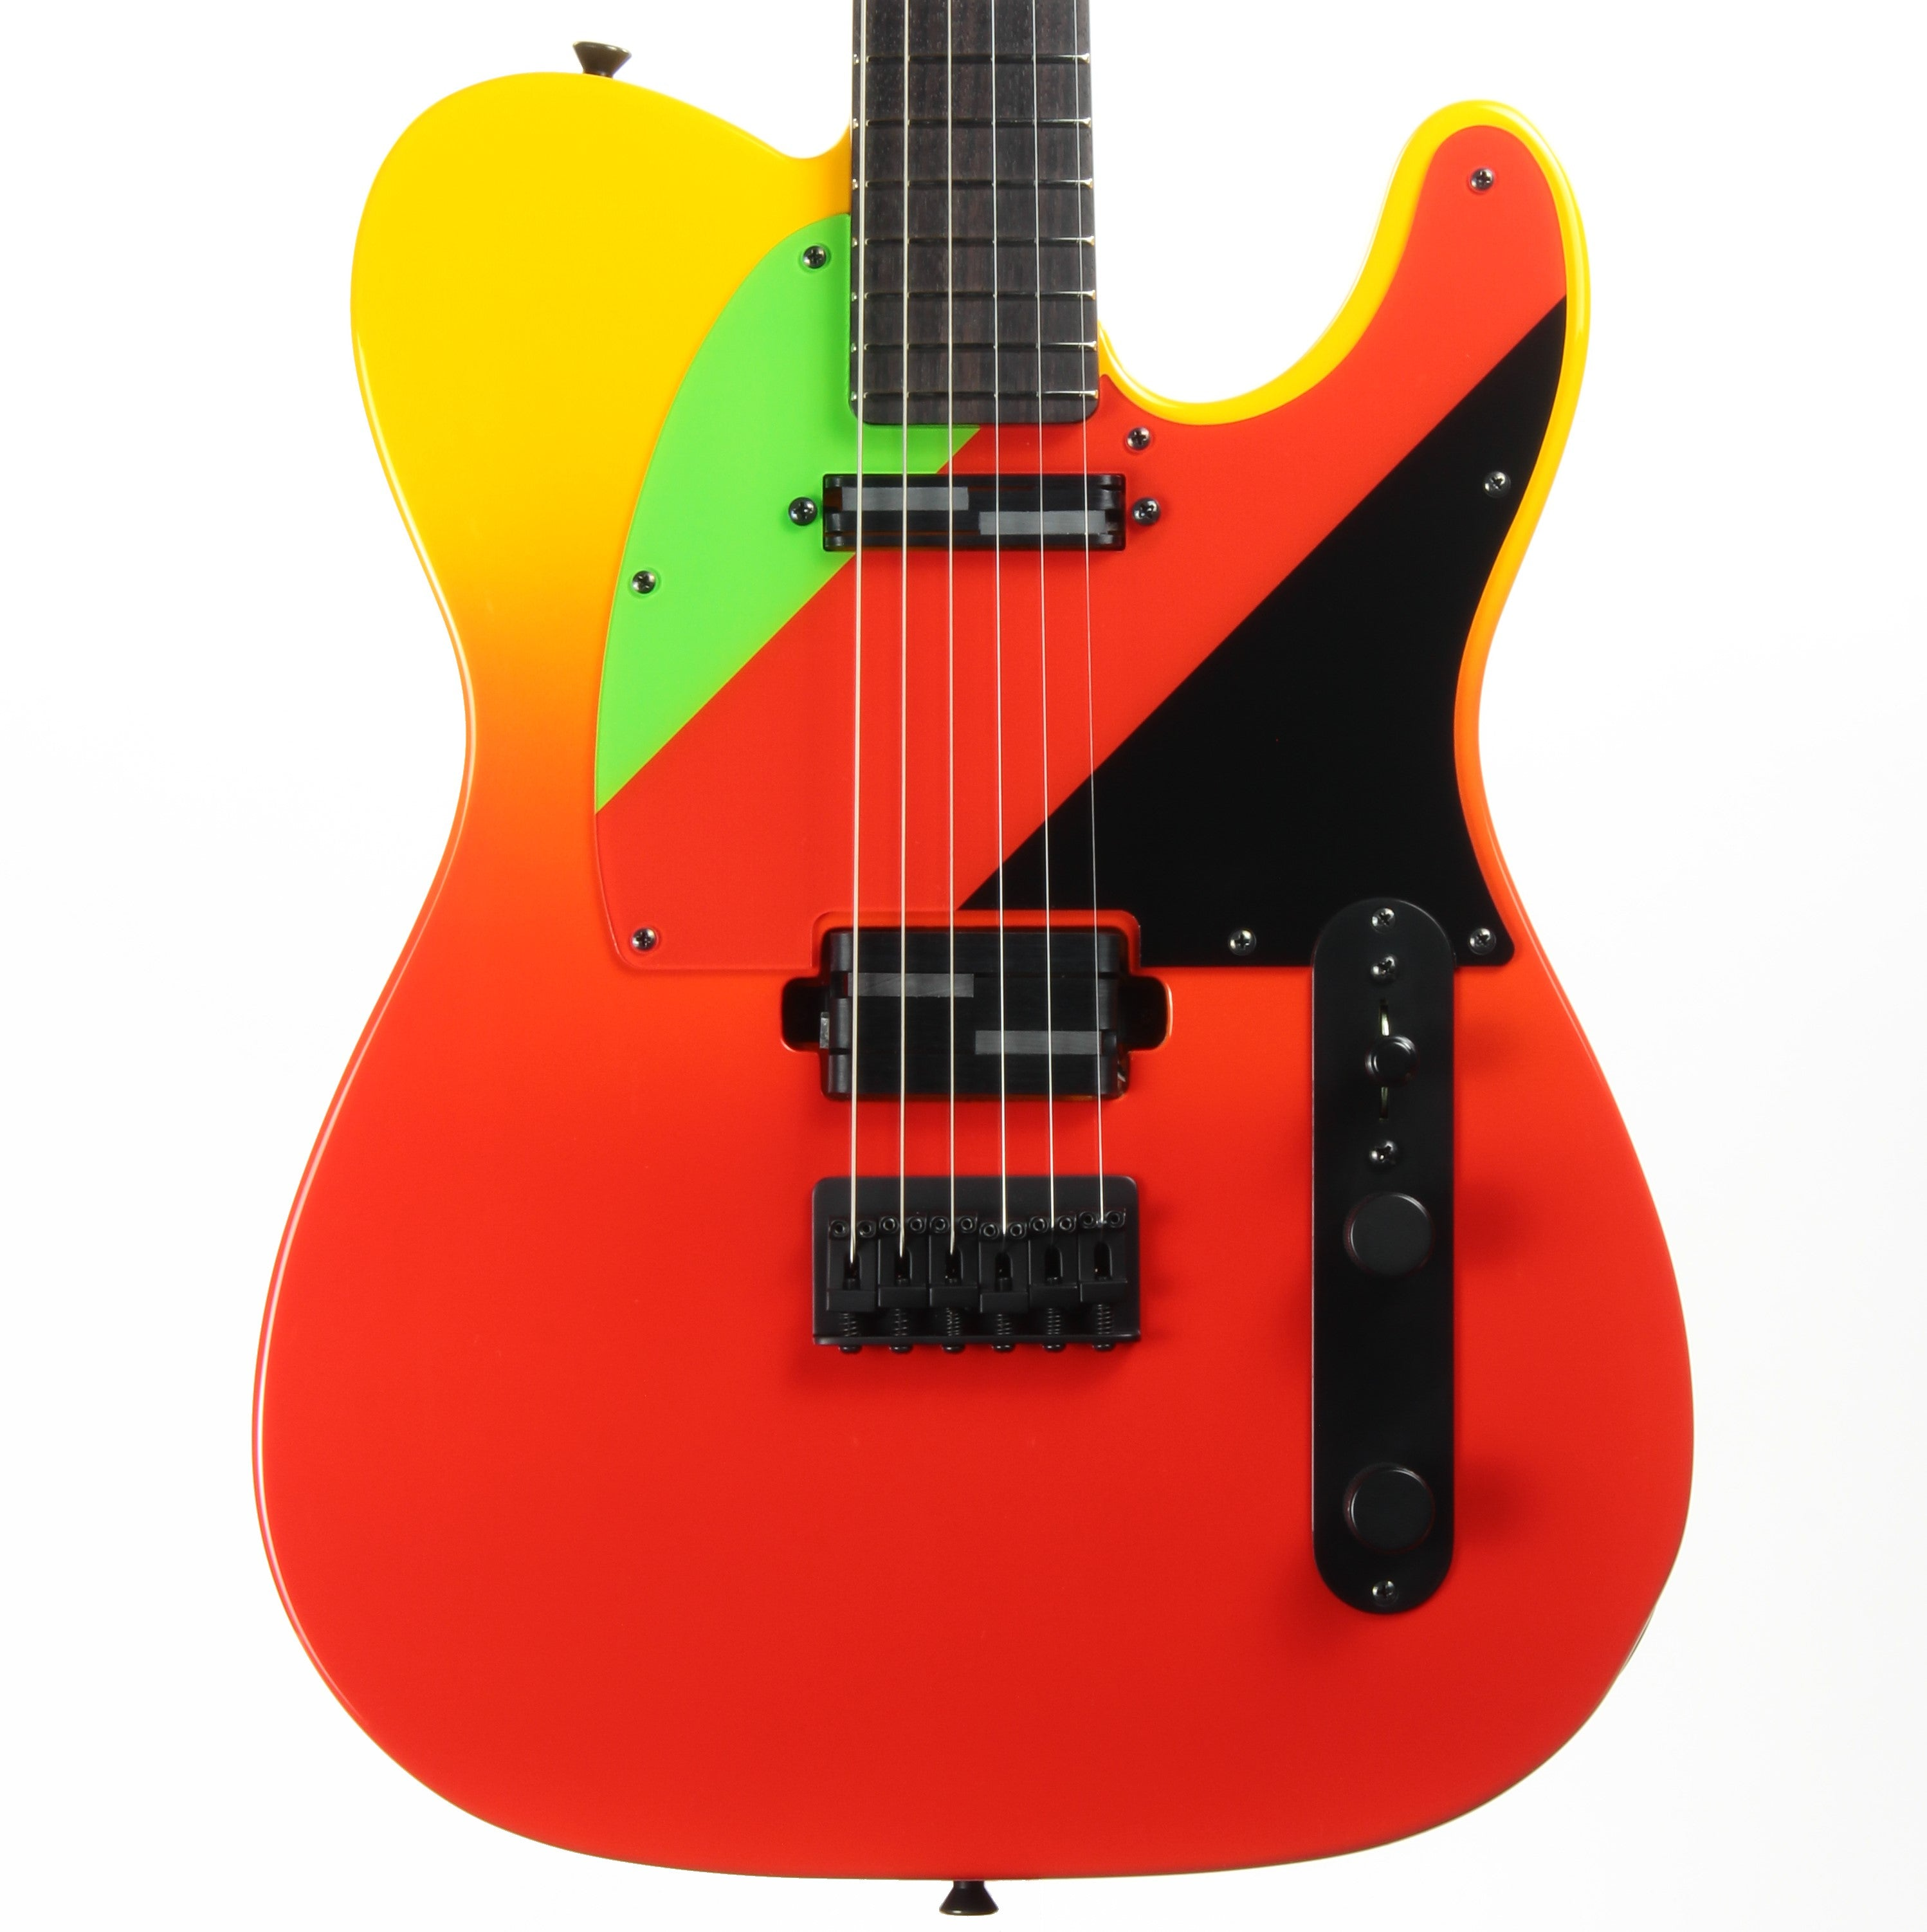 2020 Fender Evangelion Asuka Red Telecaster - Made in Japan Tele MIJ - Limited Edition